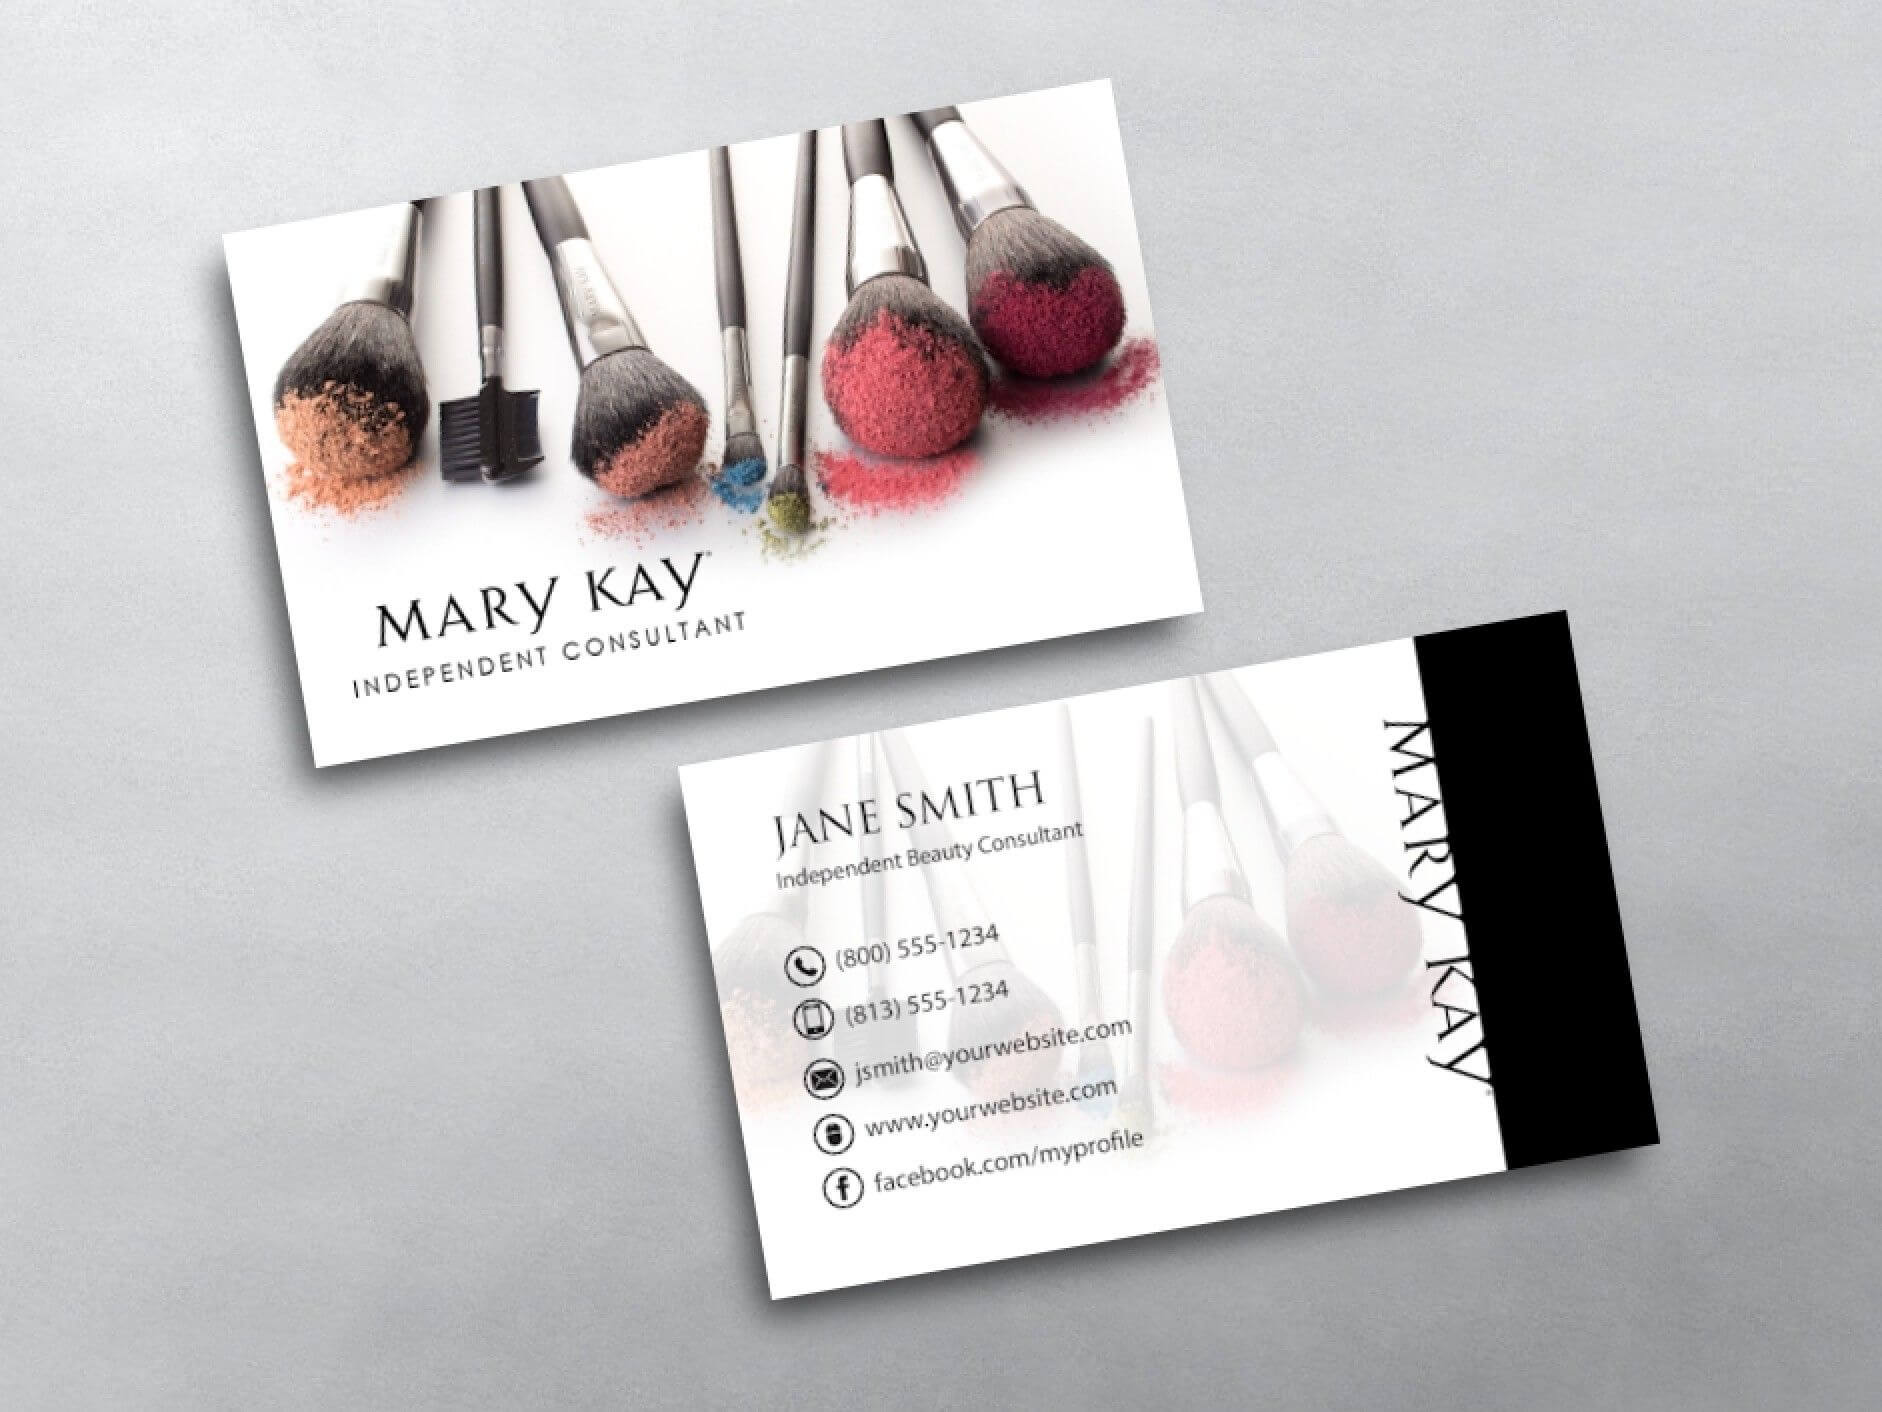 Mary Kay Business Cards In 2019 | Mary Kay, Makeup Artist throughout Mary Kay Business Cards Templates Free